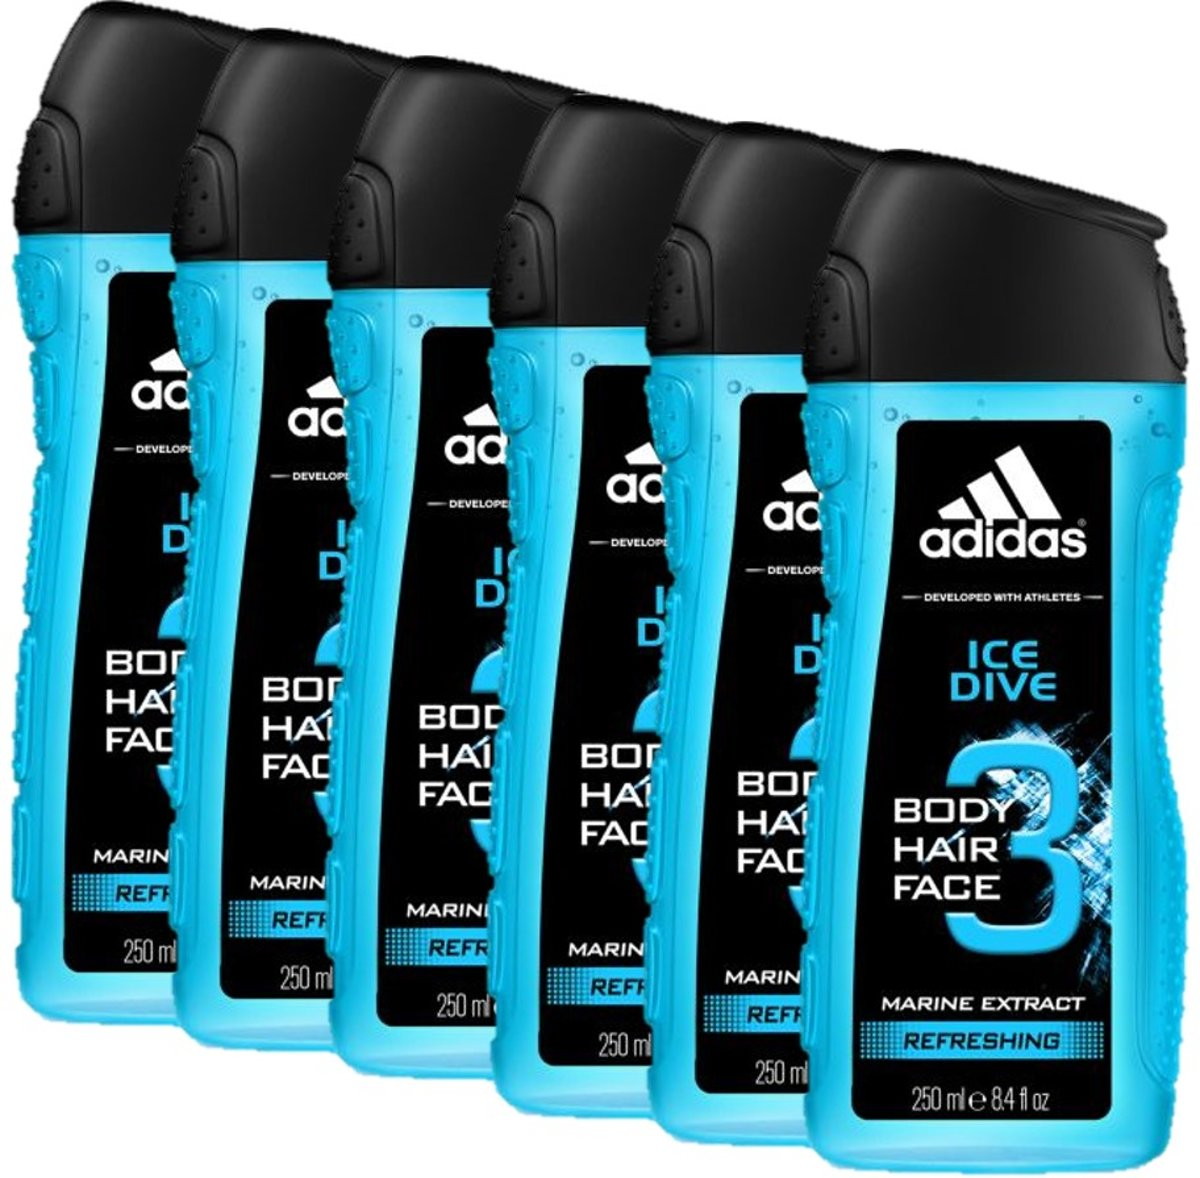 Adidas - Douchegel - 3in1 - Ice Dive - 6 x 250 ml